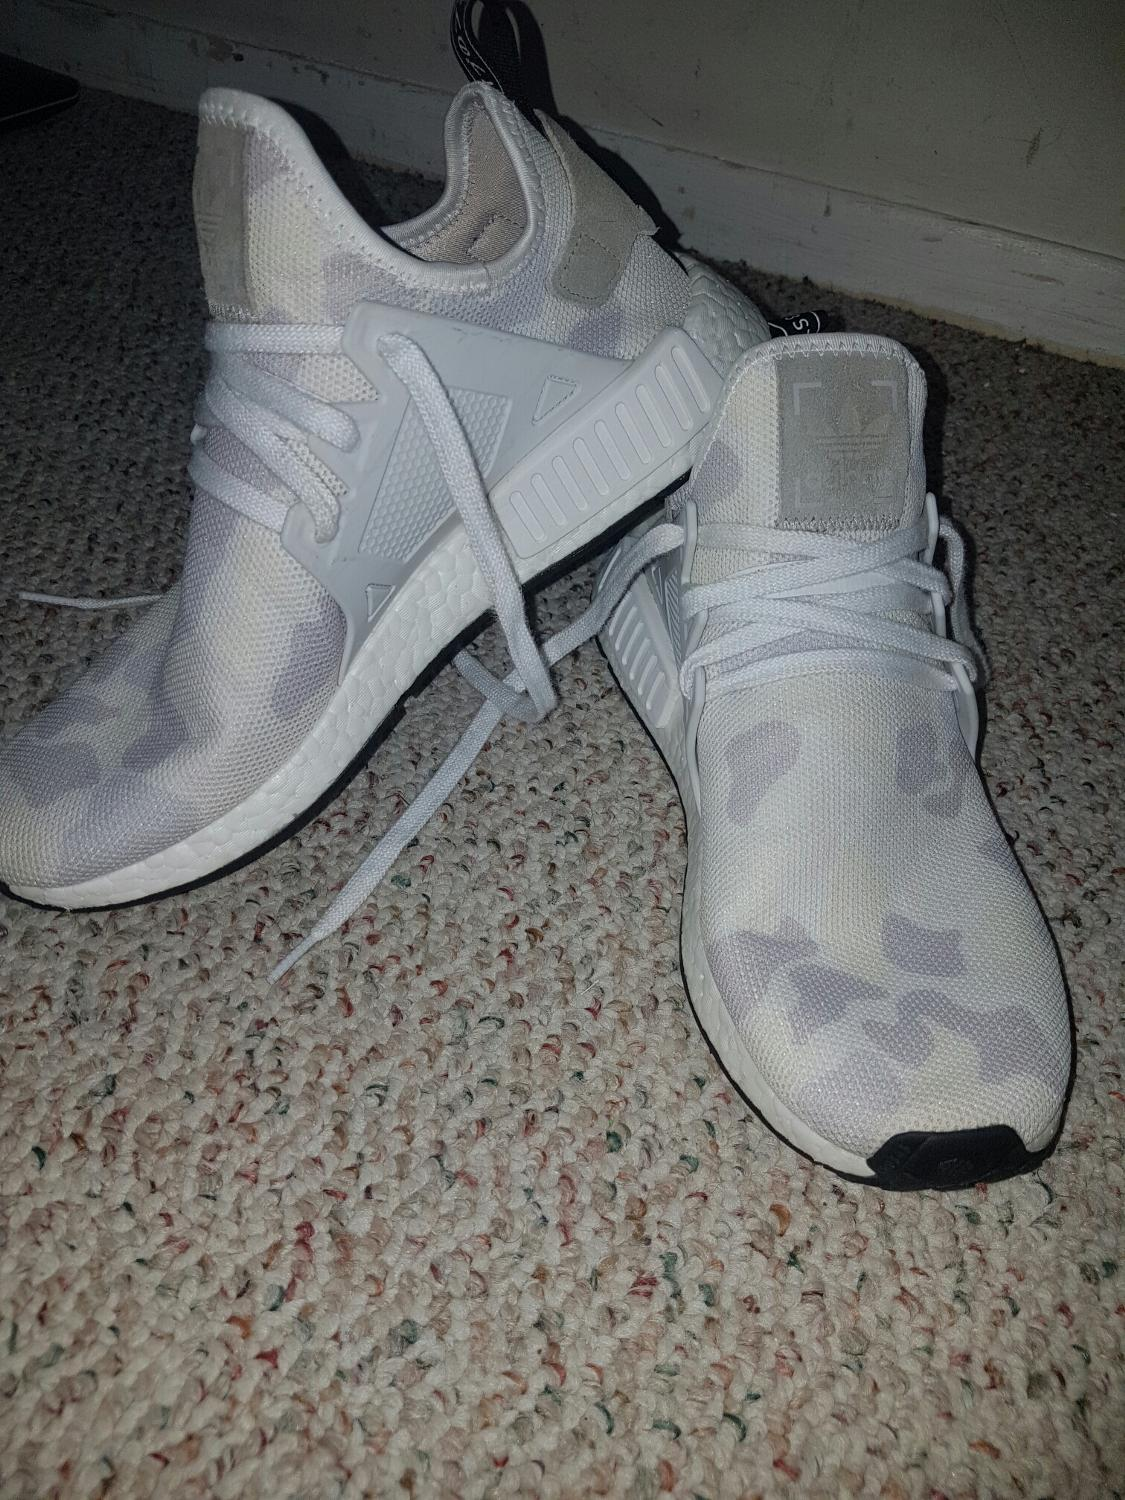 d0ad73e224f8b Best Adidas Nmd Xr1 Duck Camo White for sale in Scarborough, Ontario for  2019